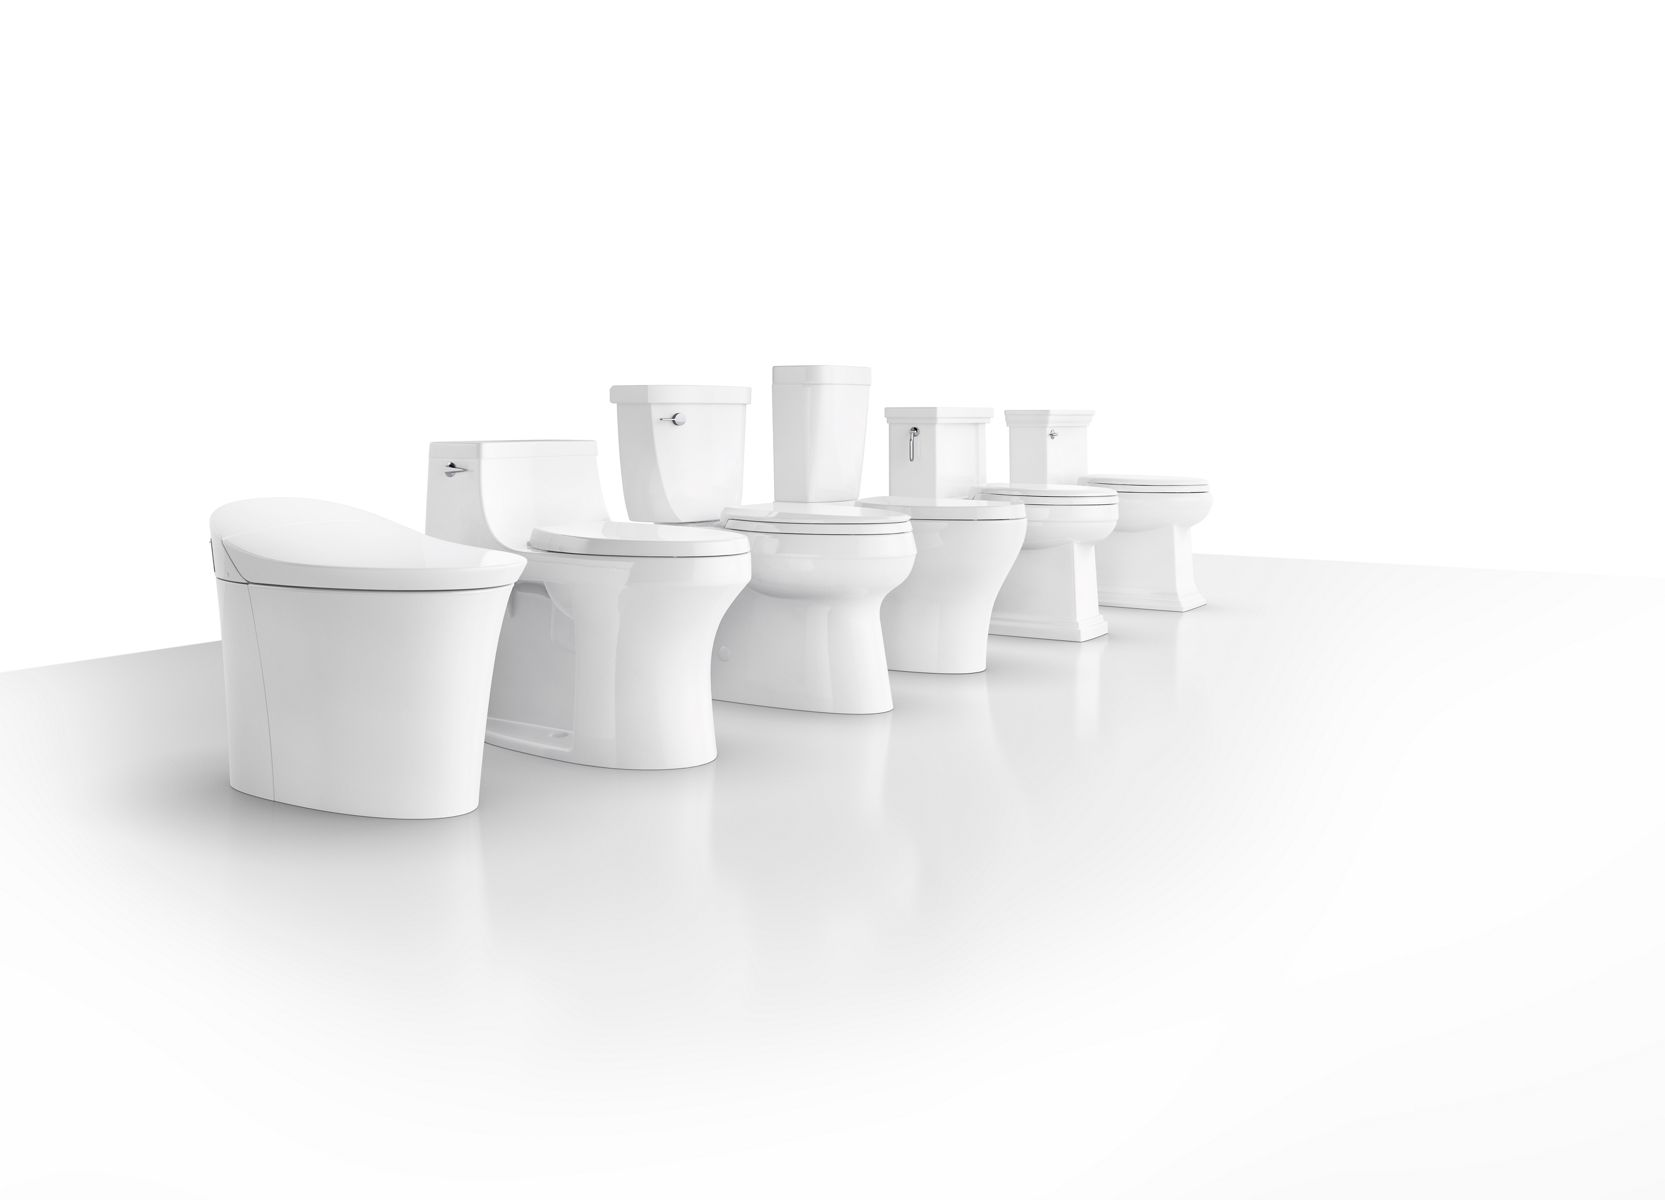 Beau Toilets Buying Guide